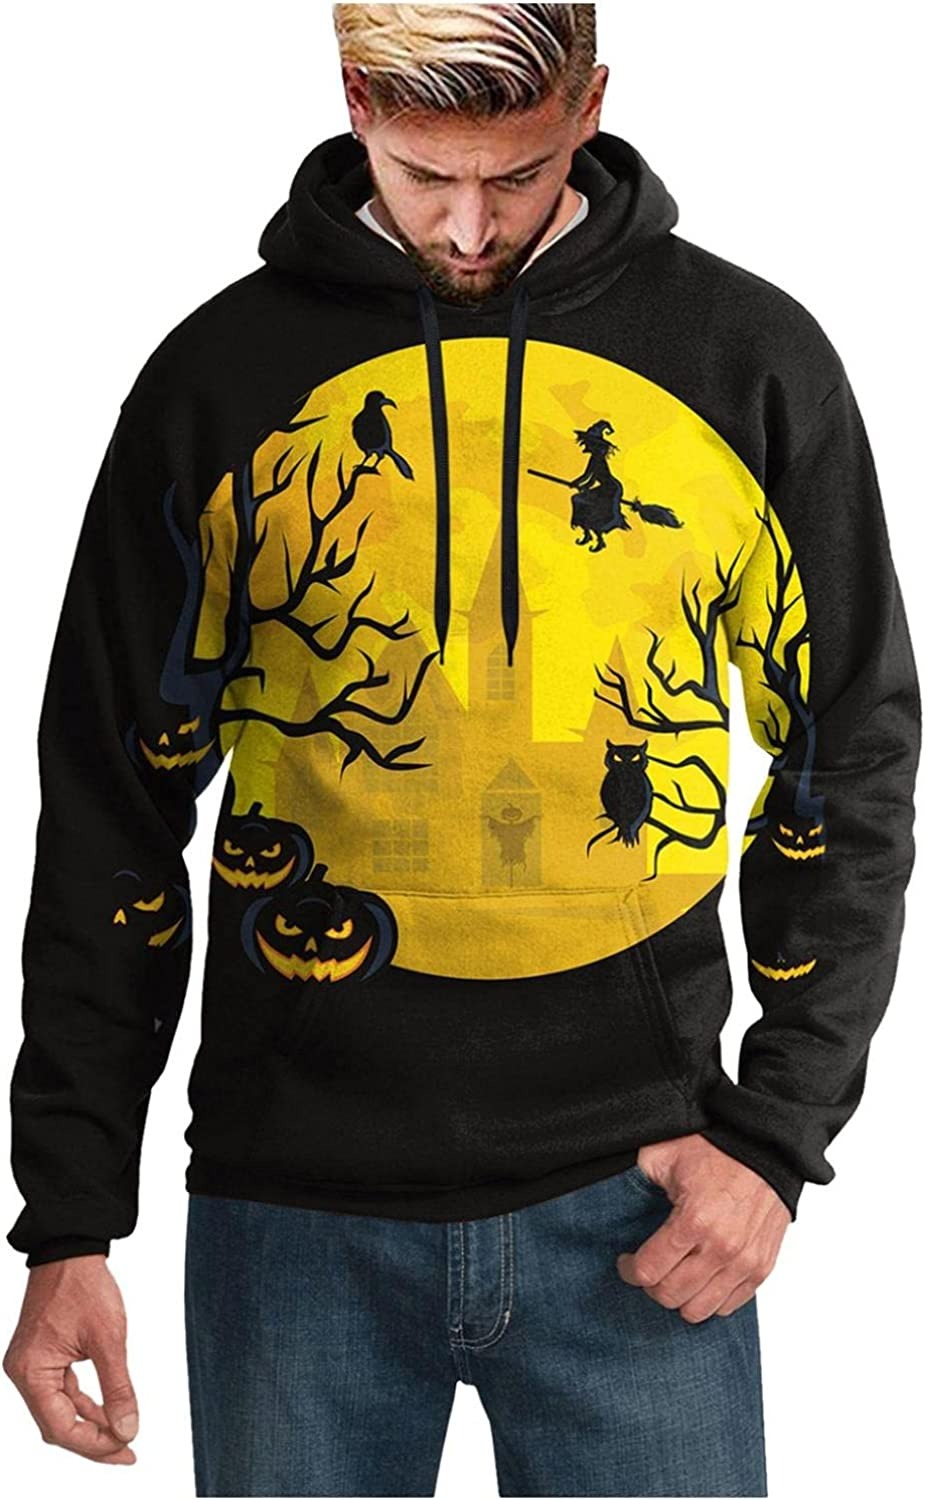 XUNFUN Men's Halloween Hooded Sweatshirts Oversized Casual Loose Fit 3D Printed Graphic Long Sleeve Pullover Hoodies Blouse